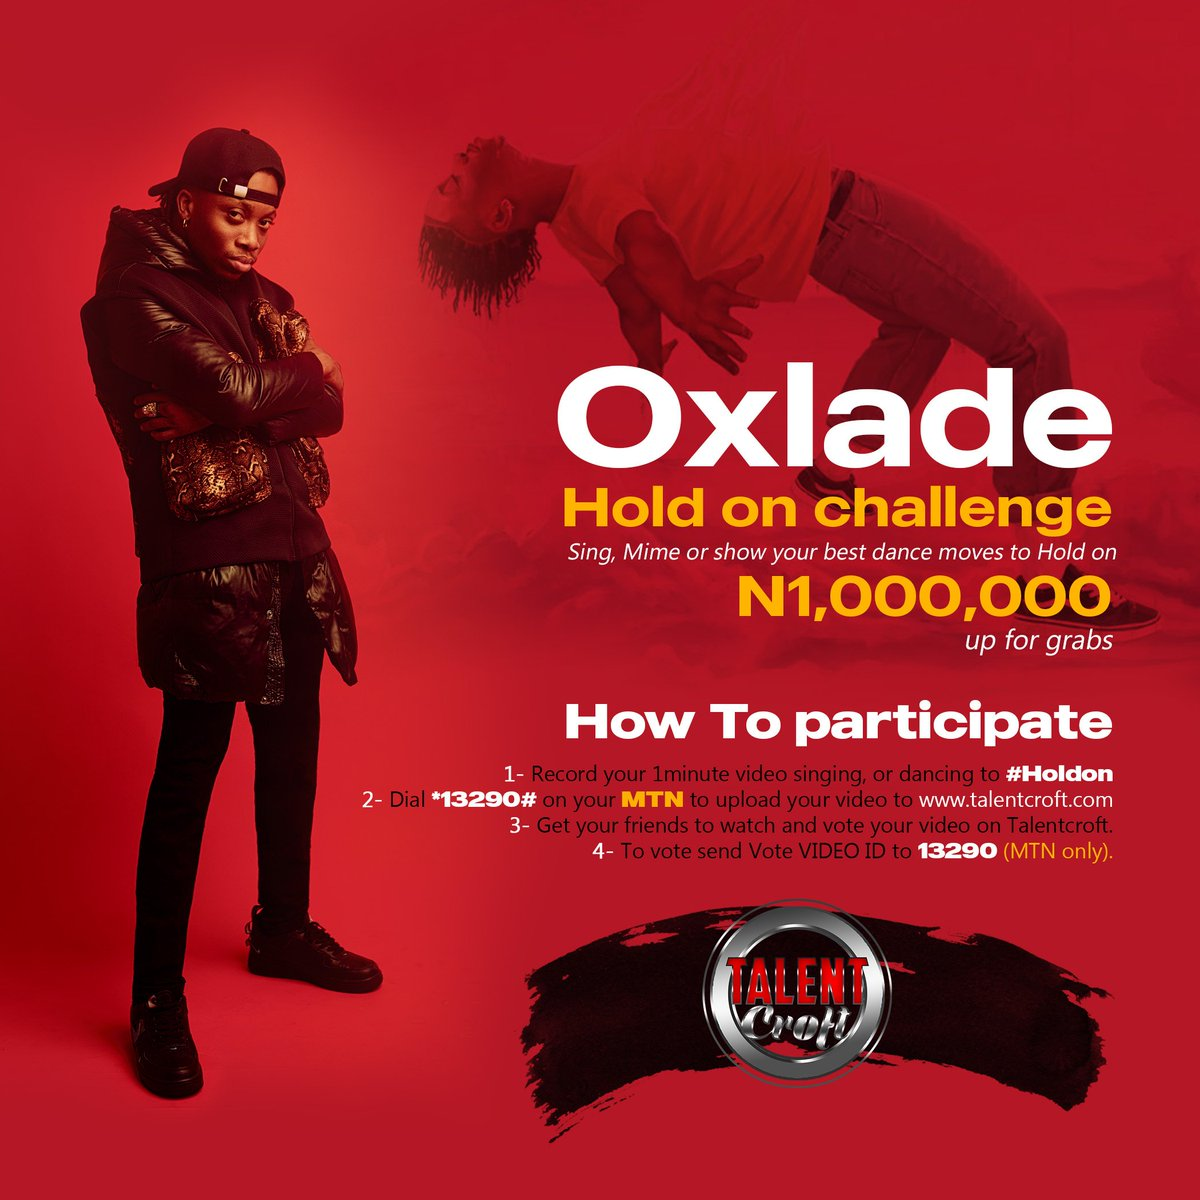 Week 4 of the #Talentcroft Showcase Special Edition - #HoldonChallenge Up to N1,000,000 to be won!!! To participate; 1. Record a One minute Video of you singing, miming, dancing or even performing a skit to #Holdon by @oxladeofficial